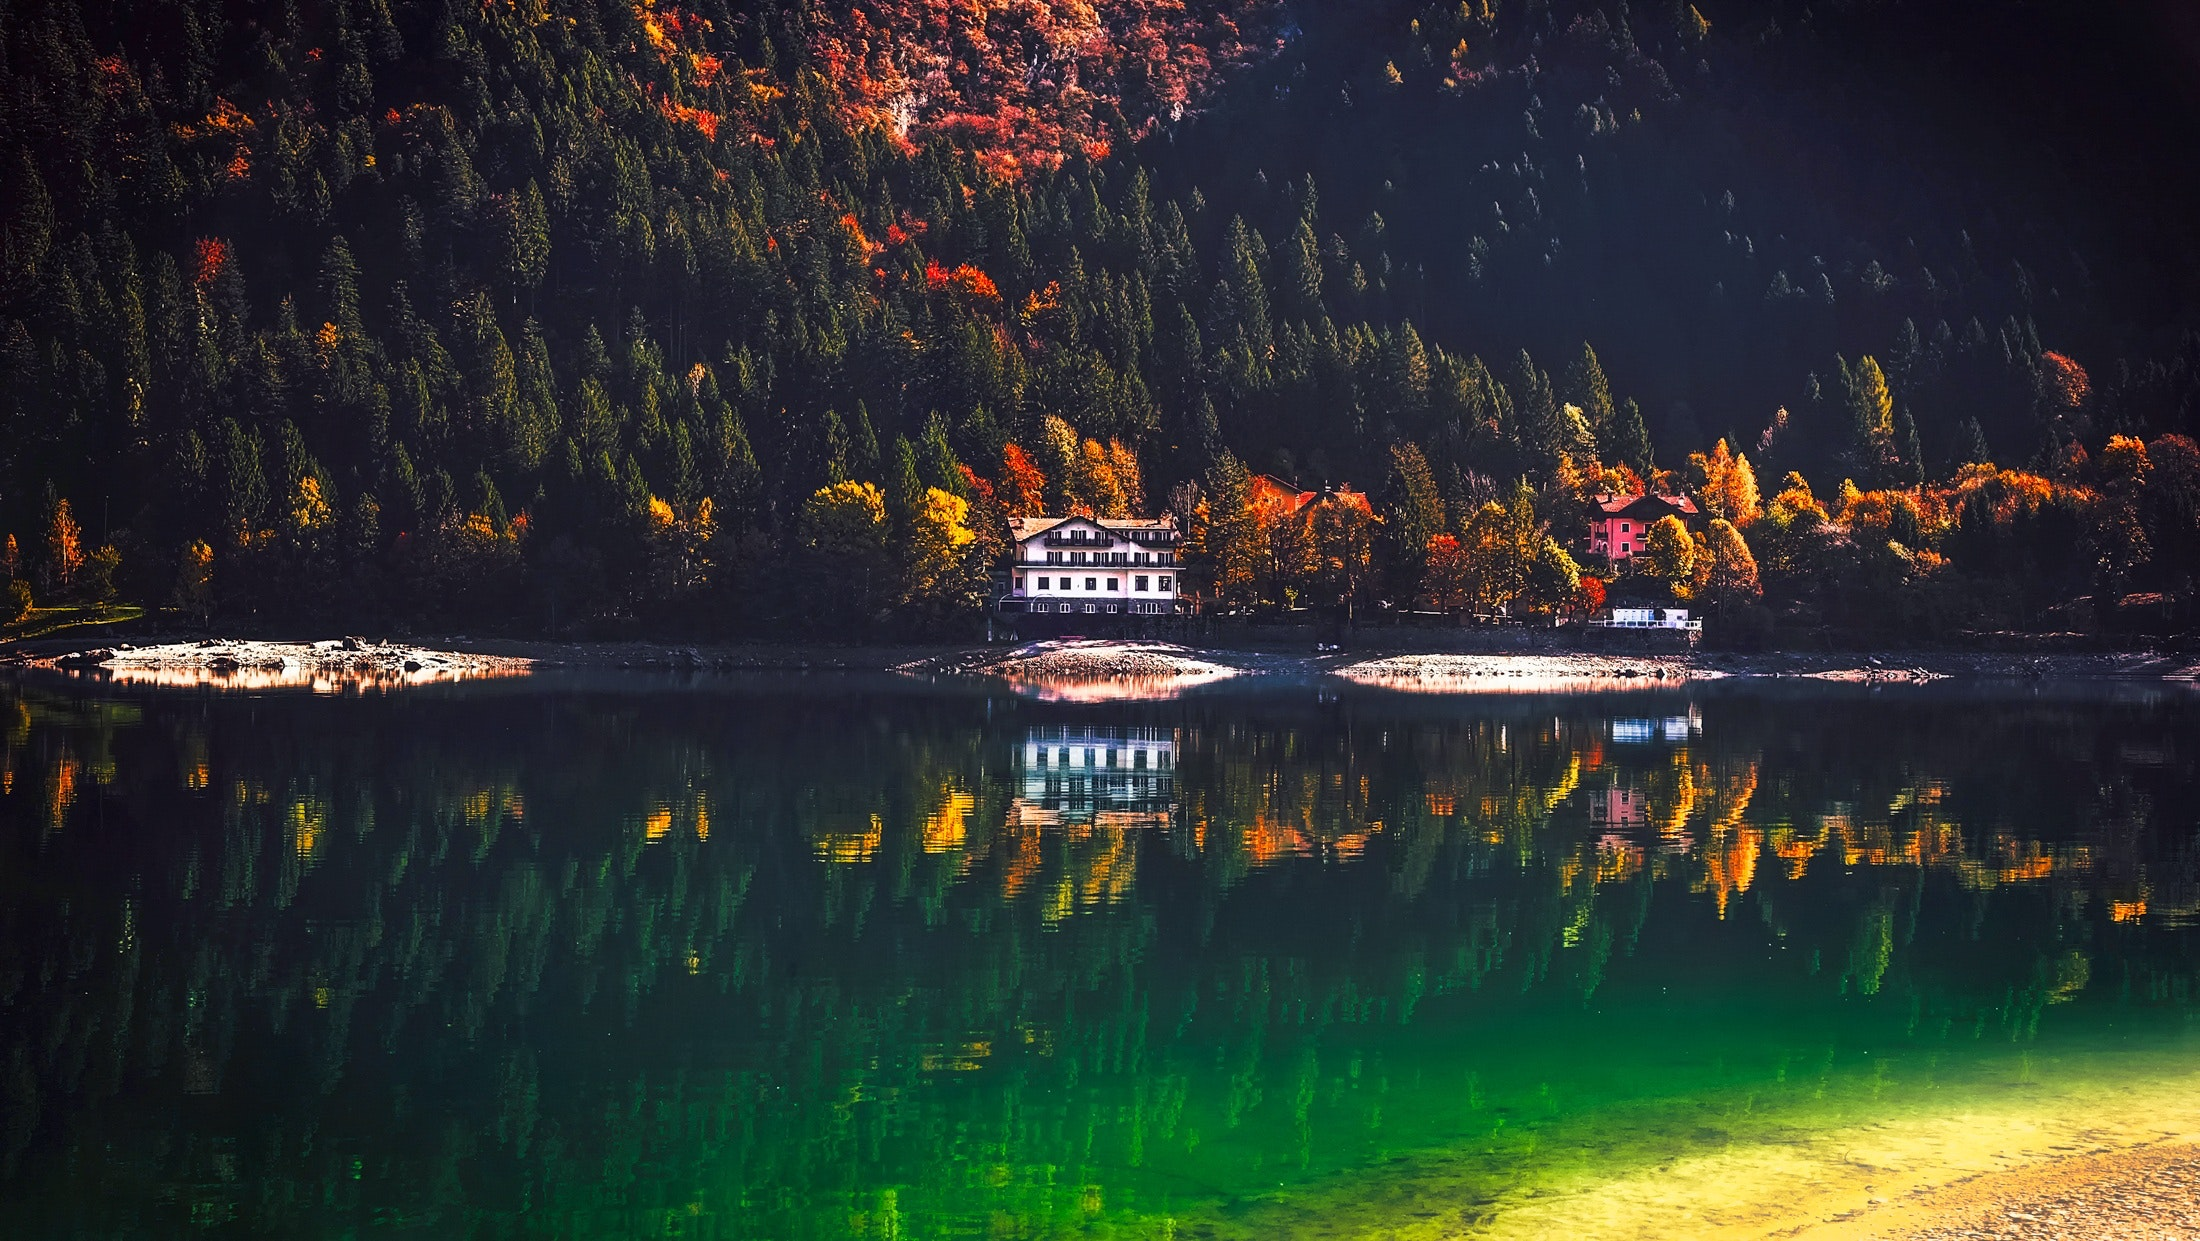 Reflection of Trees in Lake, Architecture, Shore, Reflection, Reflections, HQ Photo